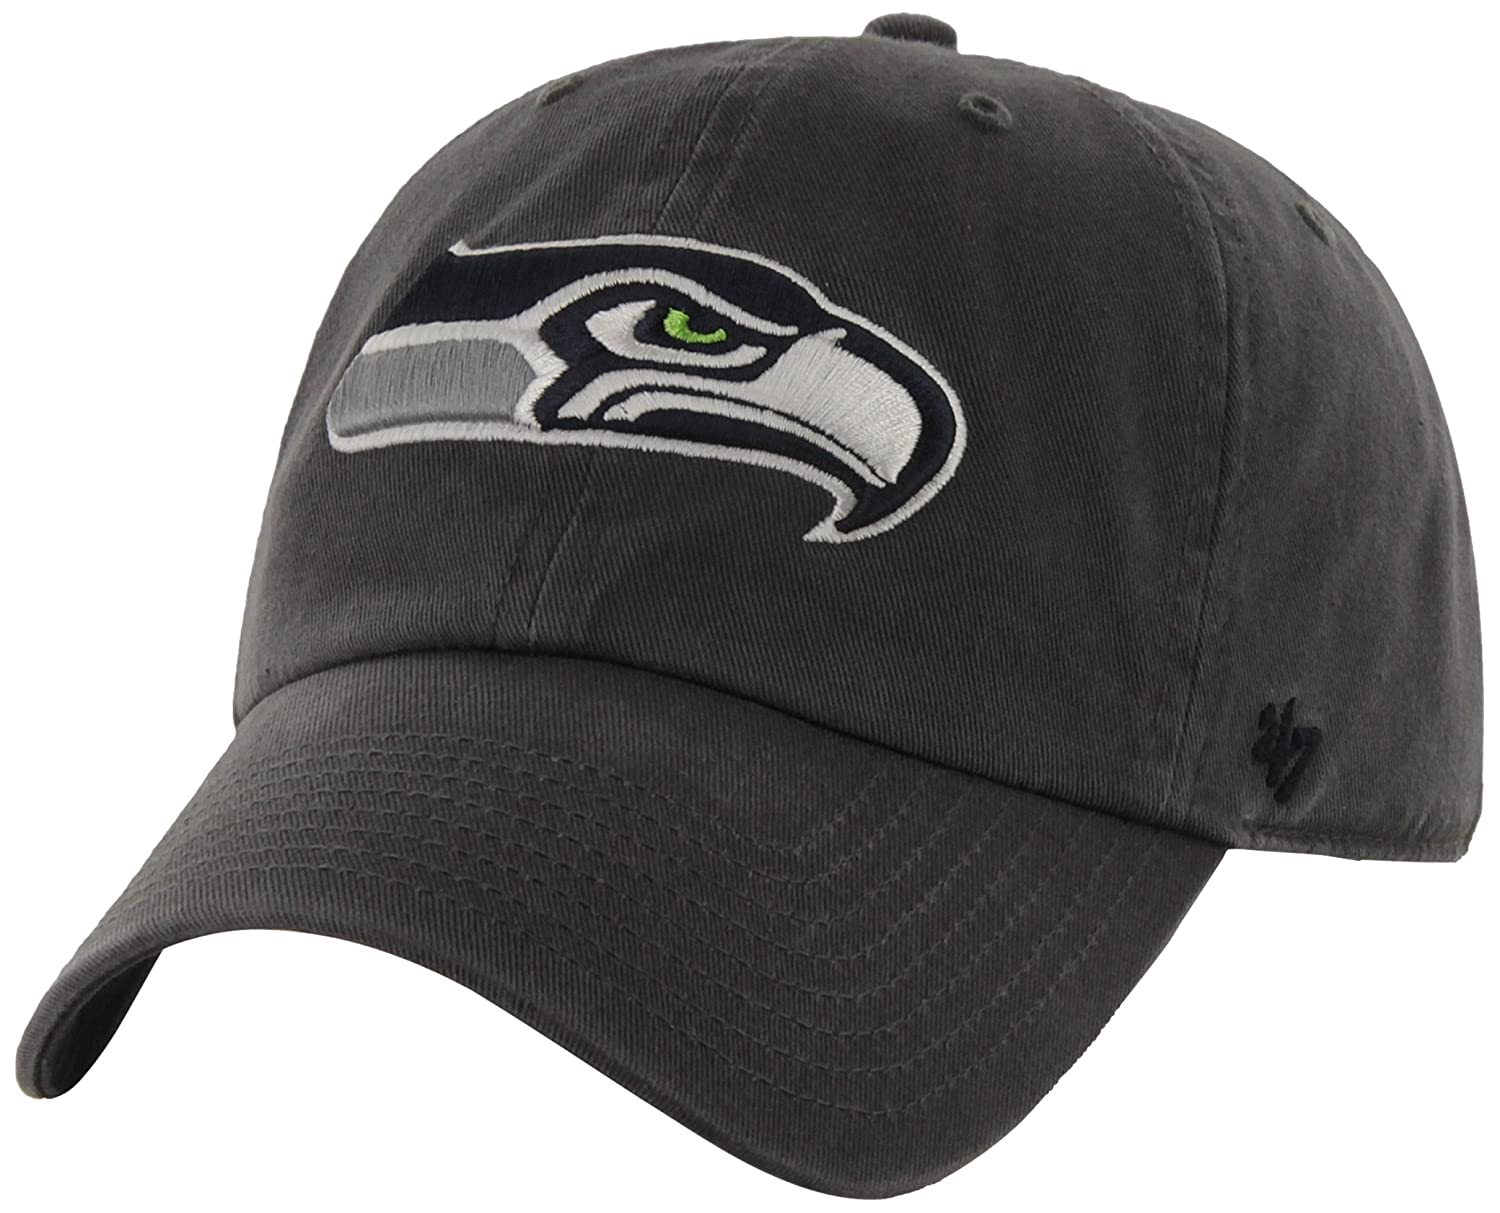 043e748a5 Amazon.com   NFL Seattle Seahawks  47 Brand Clean Up Adjustable Hat ...